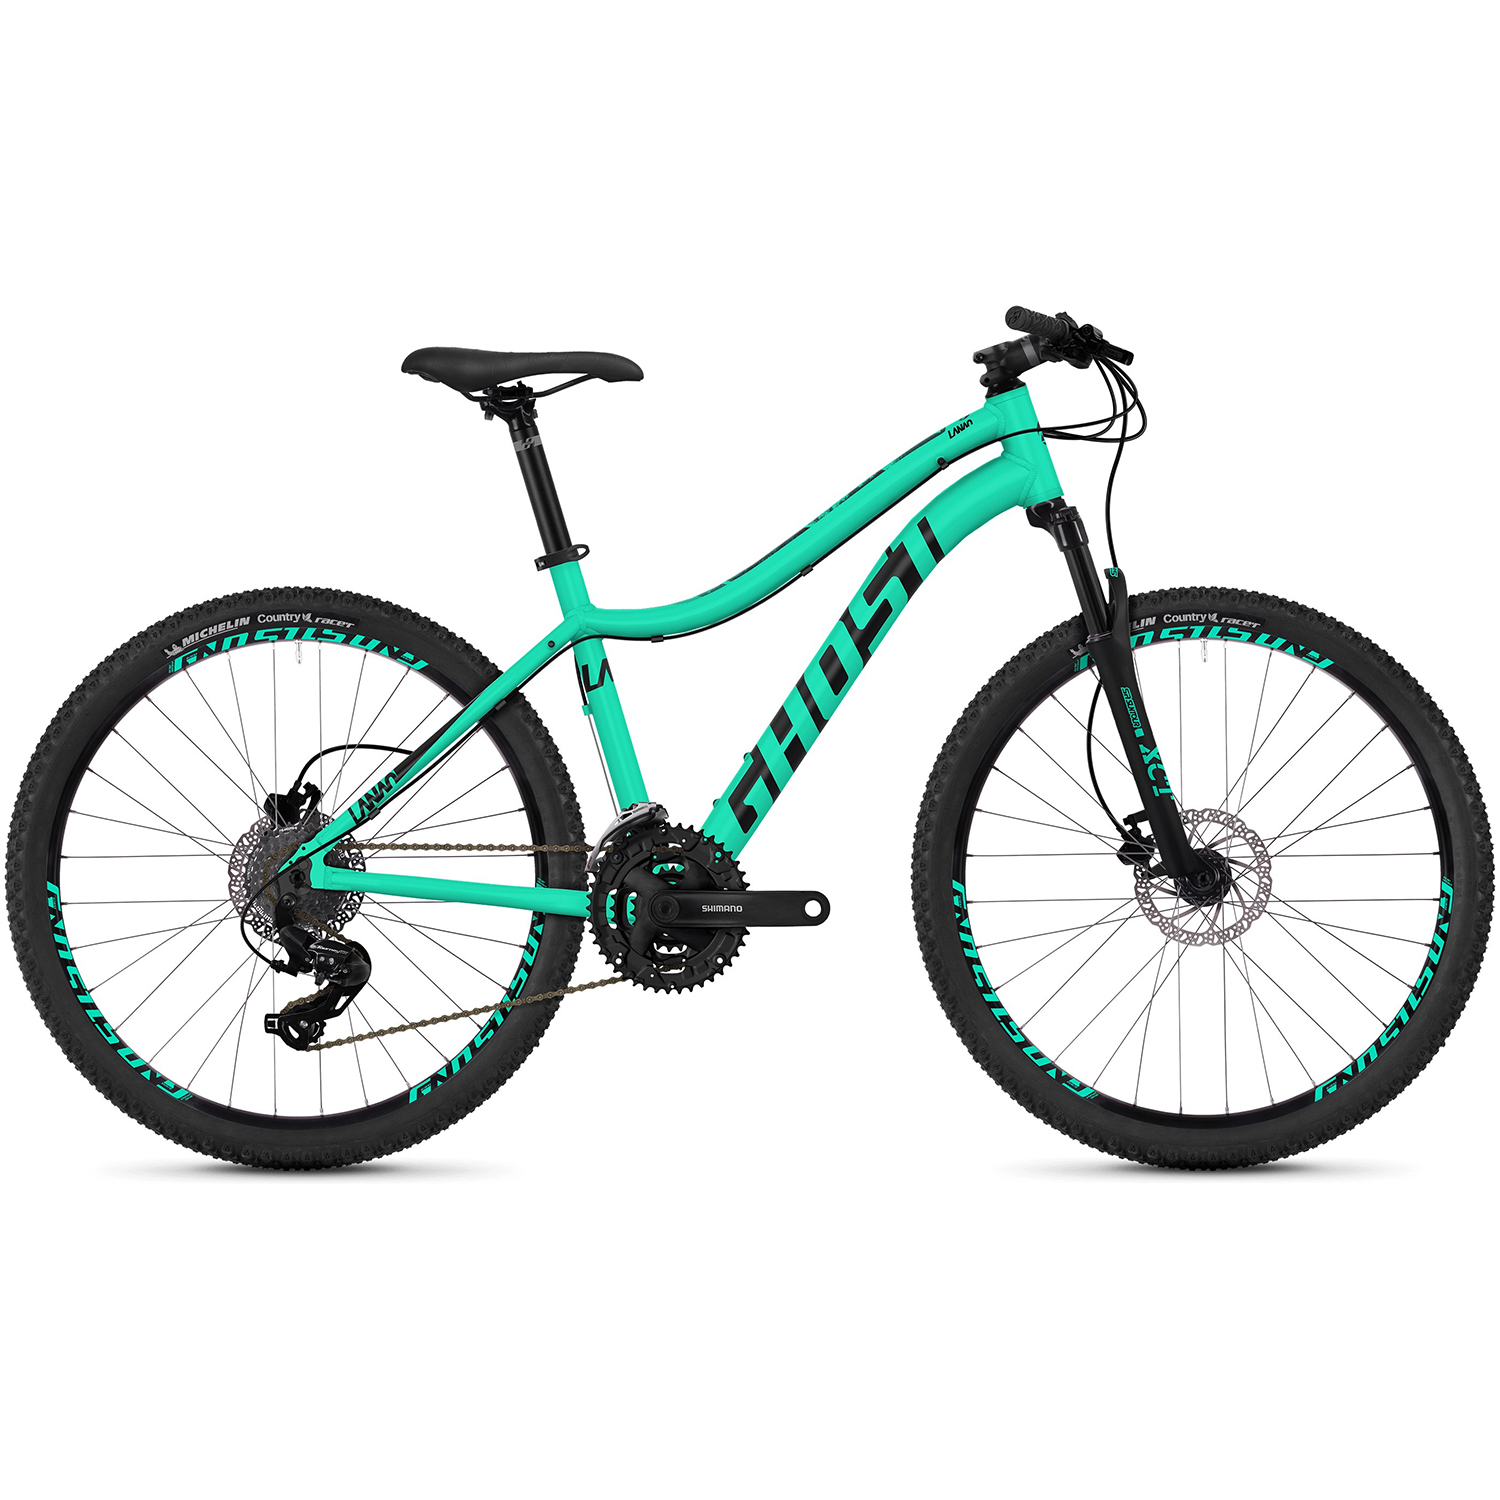 ghost lanao 1 6 al w 26 zoll mountainbike hardtail mtb. Black Bedroom Furniture Sets. Home Design Ideas